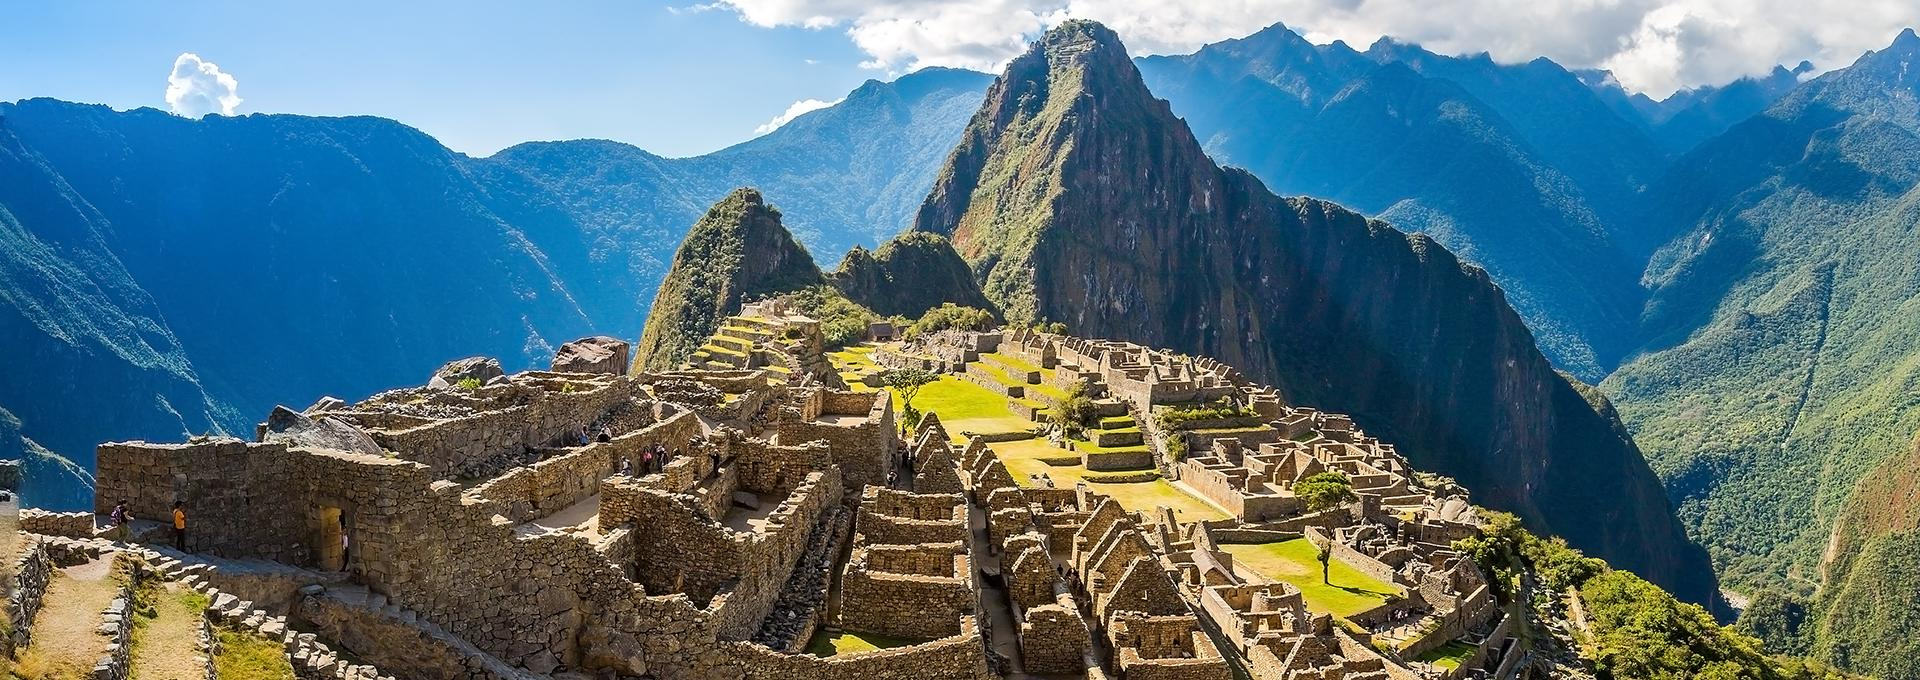 Peru vacations with airfare from Liberty Travel